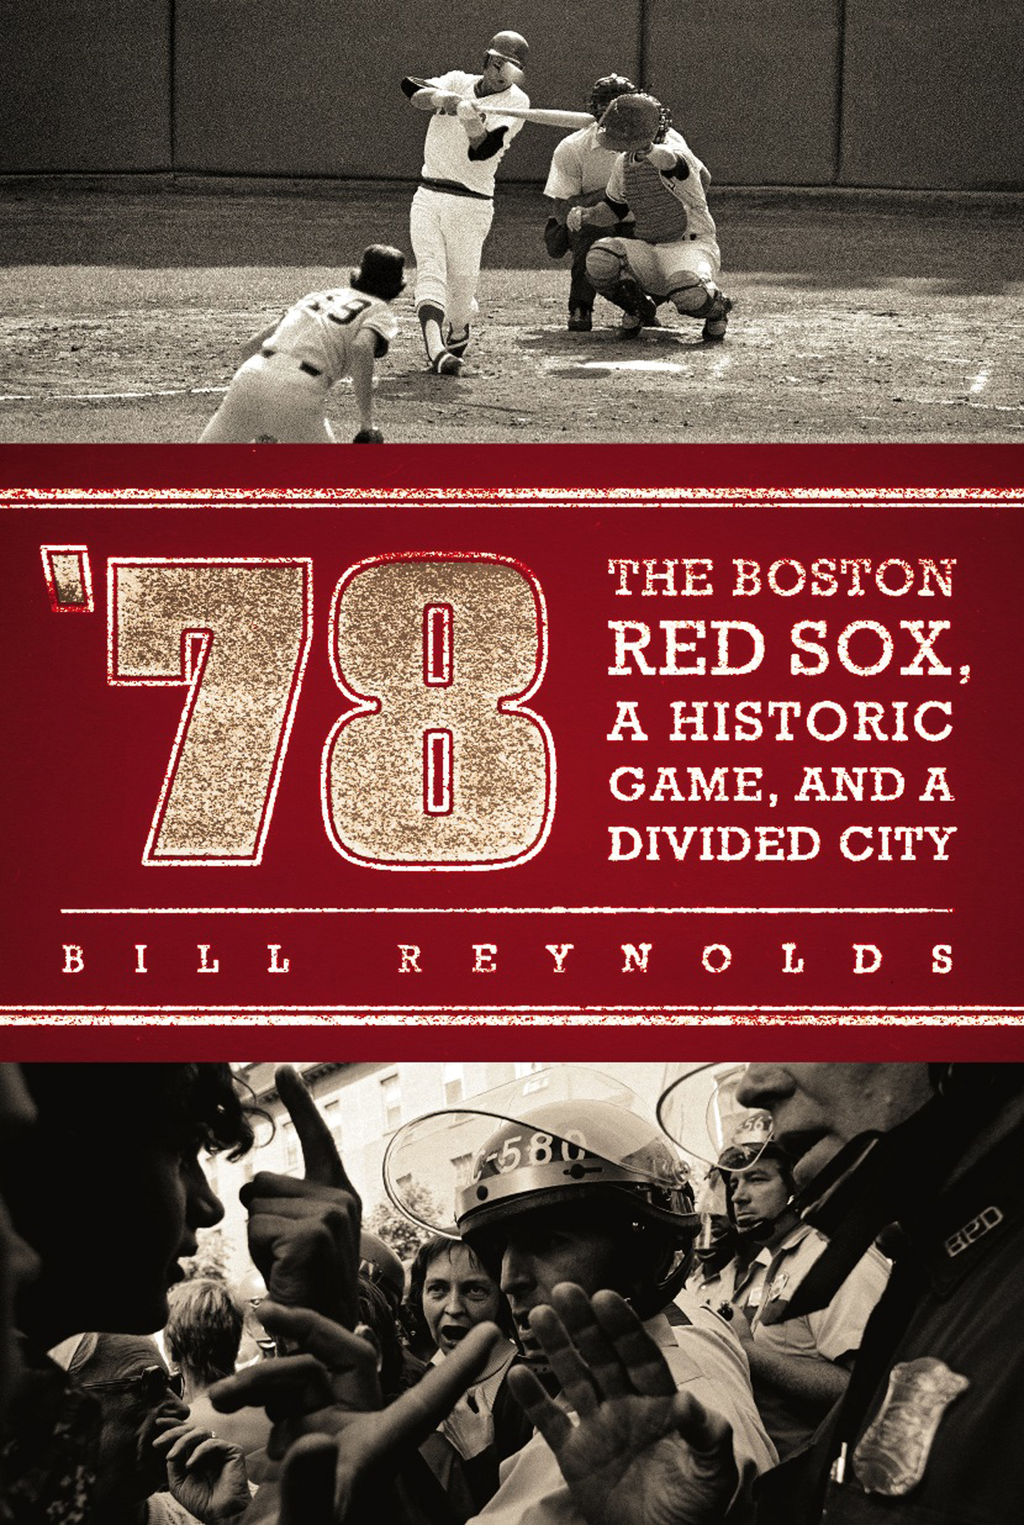 '78 The Boston Red Sox,  A Historic Game,  and a Divided City